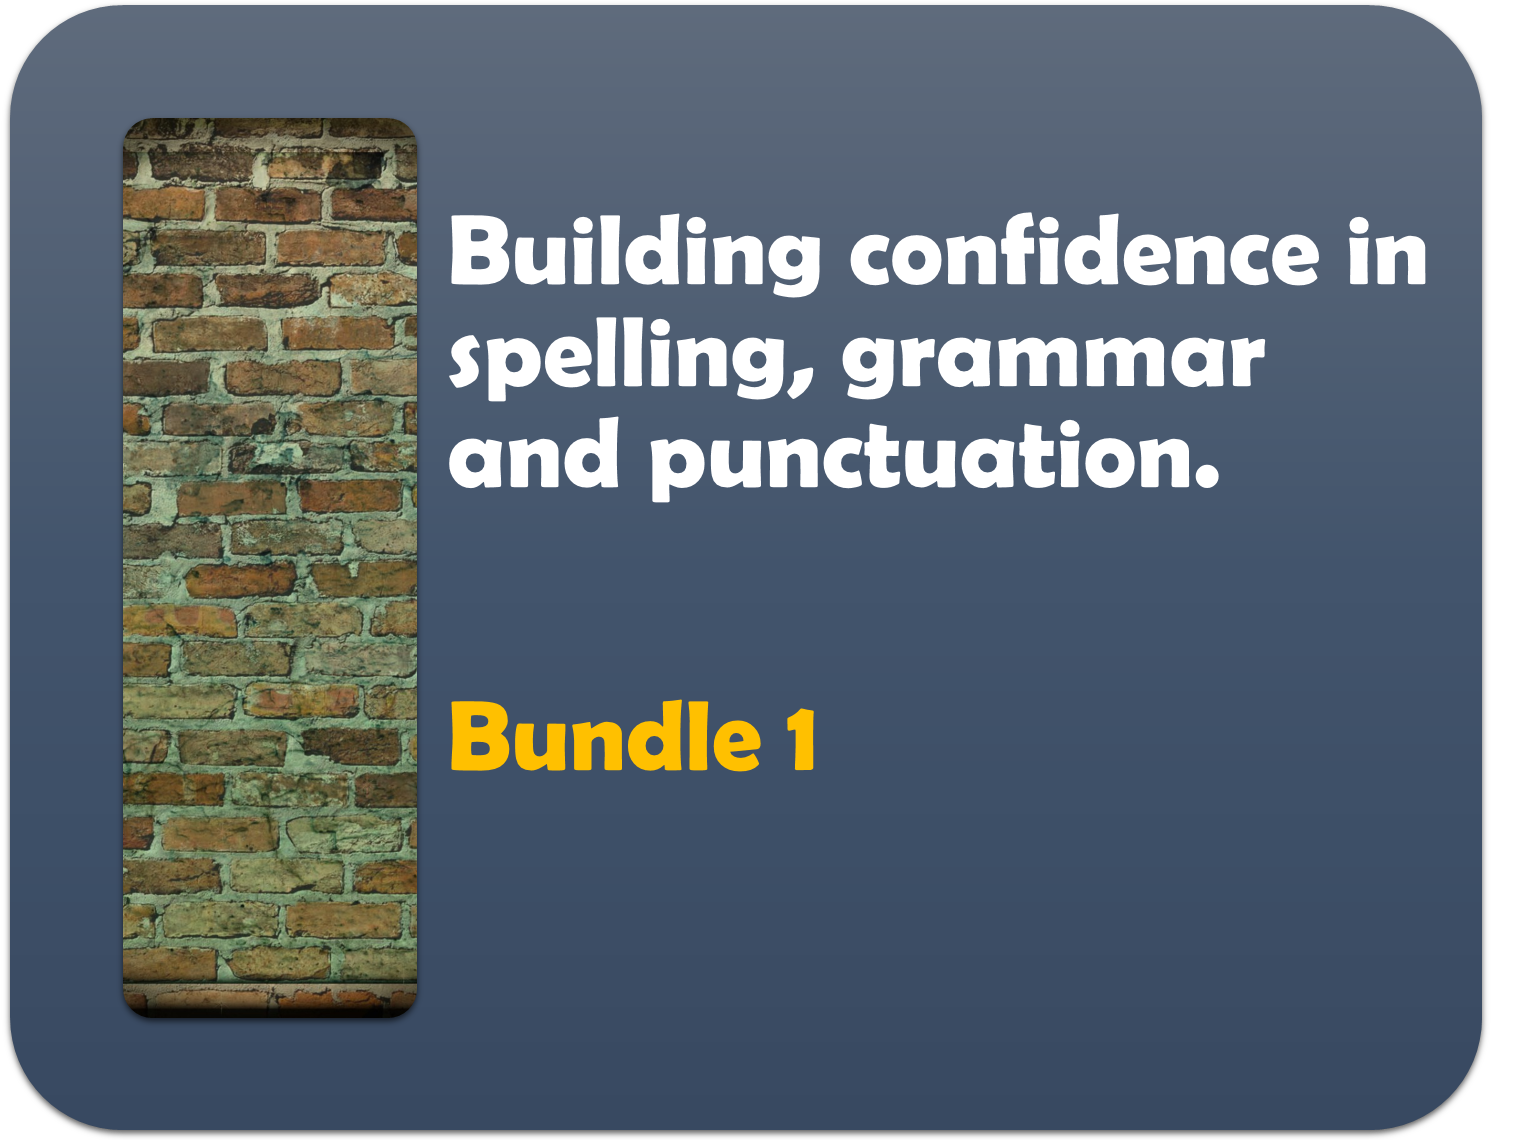 building confidence in spelling, punctuation and grammar 1